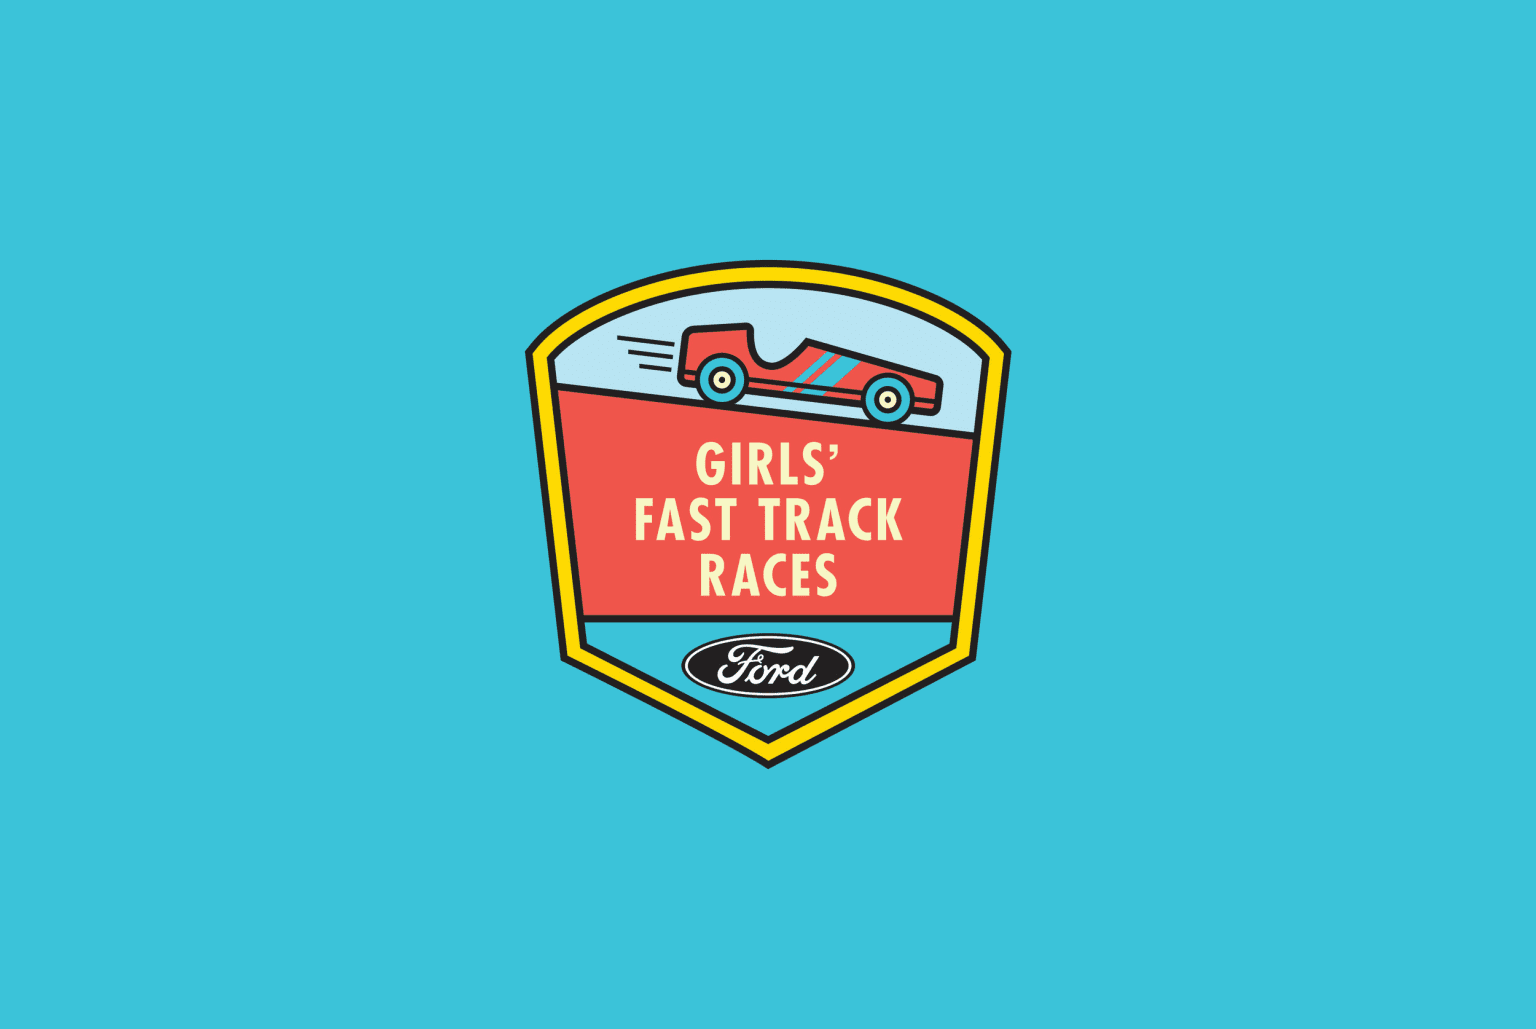 Girls' Fast Track Races